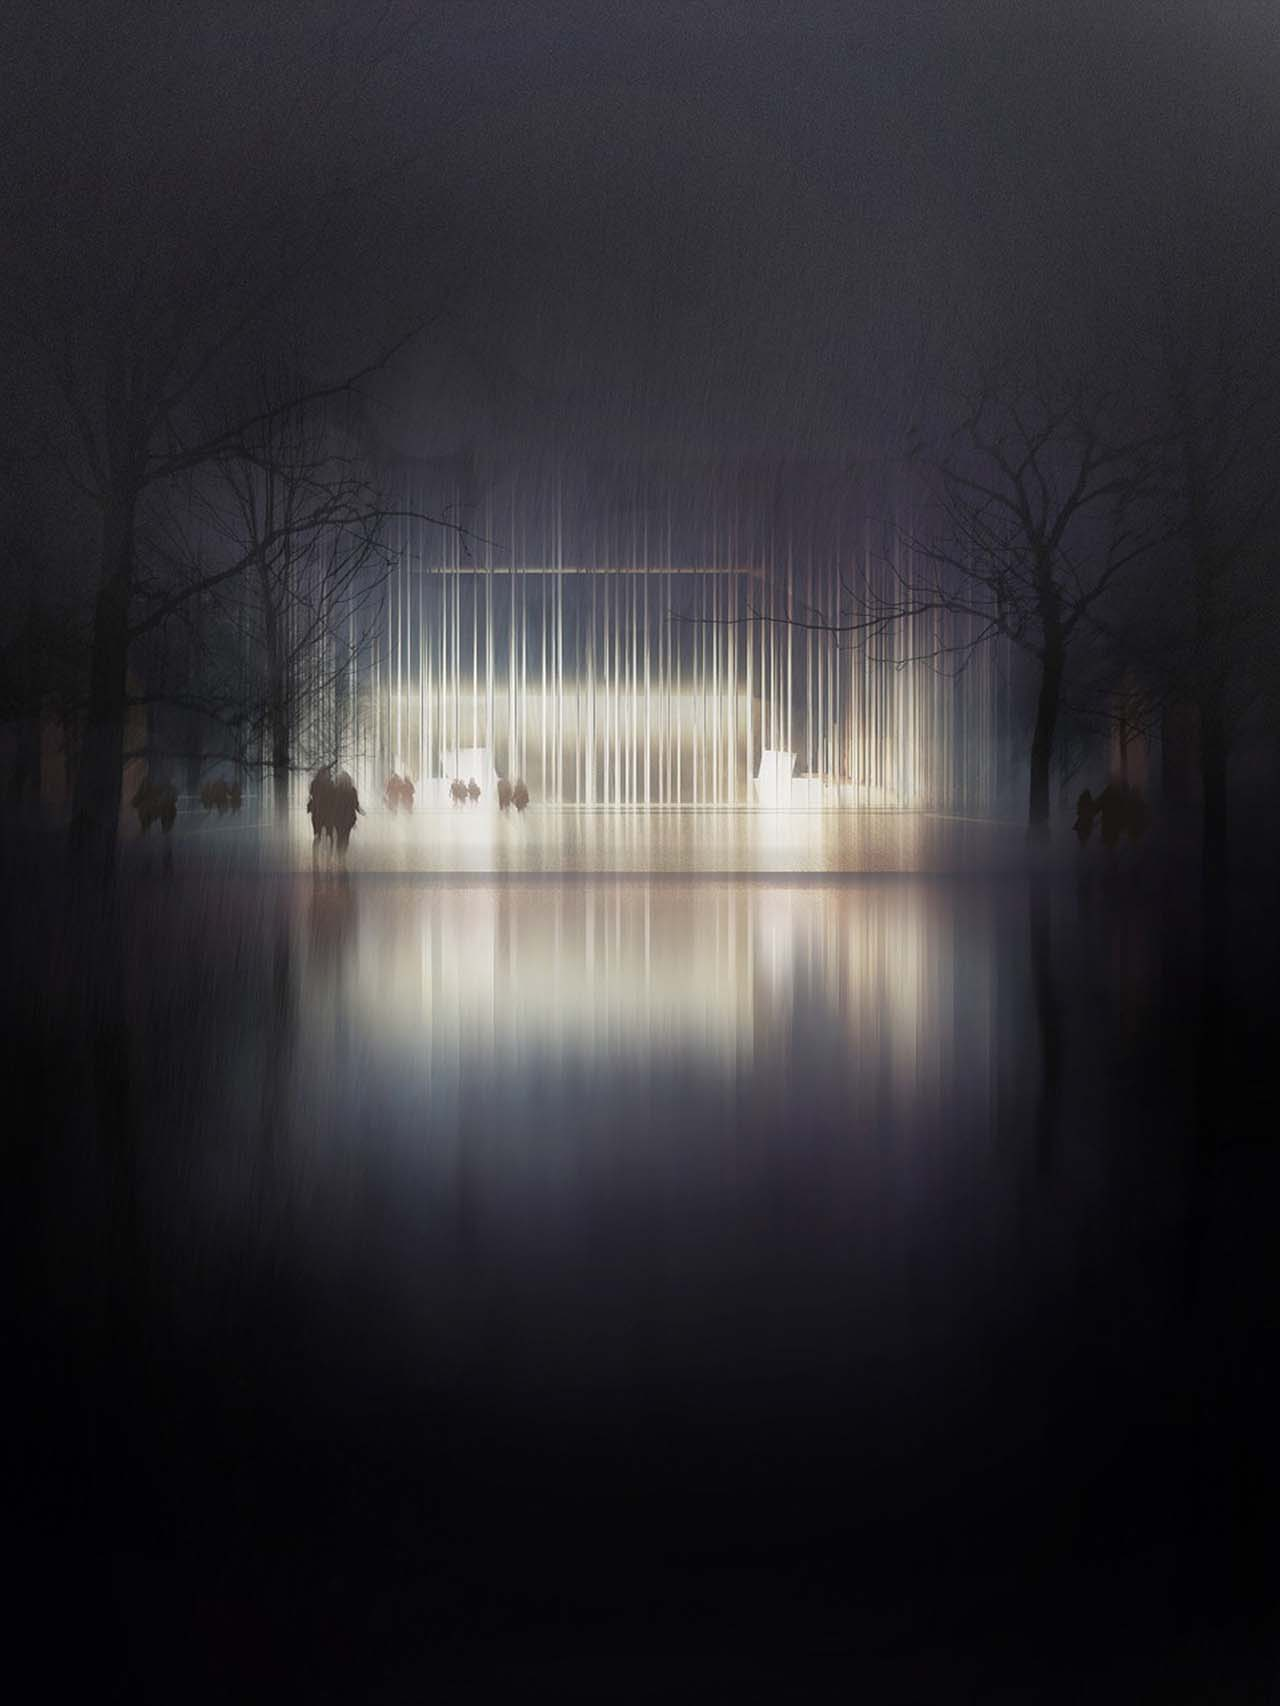 Eerie rainy night rendering of Sinfonia Varsovia building: lit interior, vertical lines facade reflected in pavement